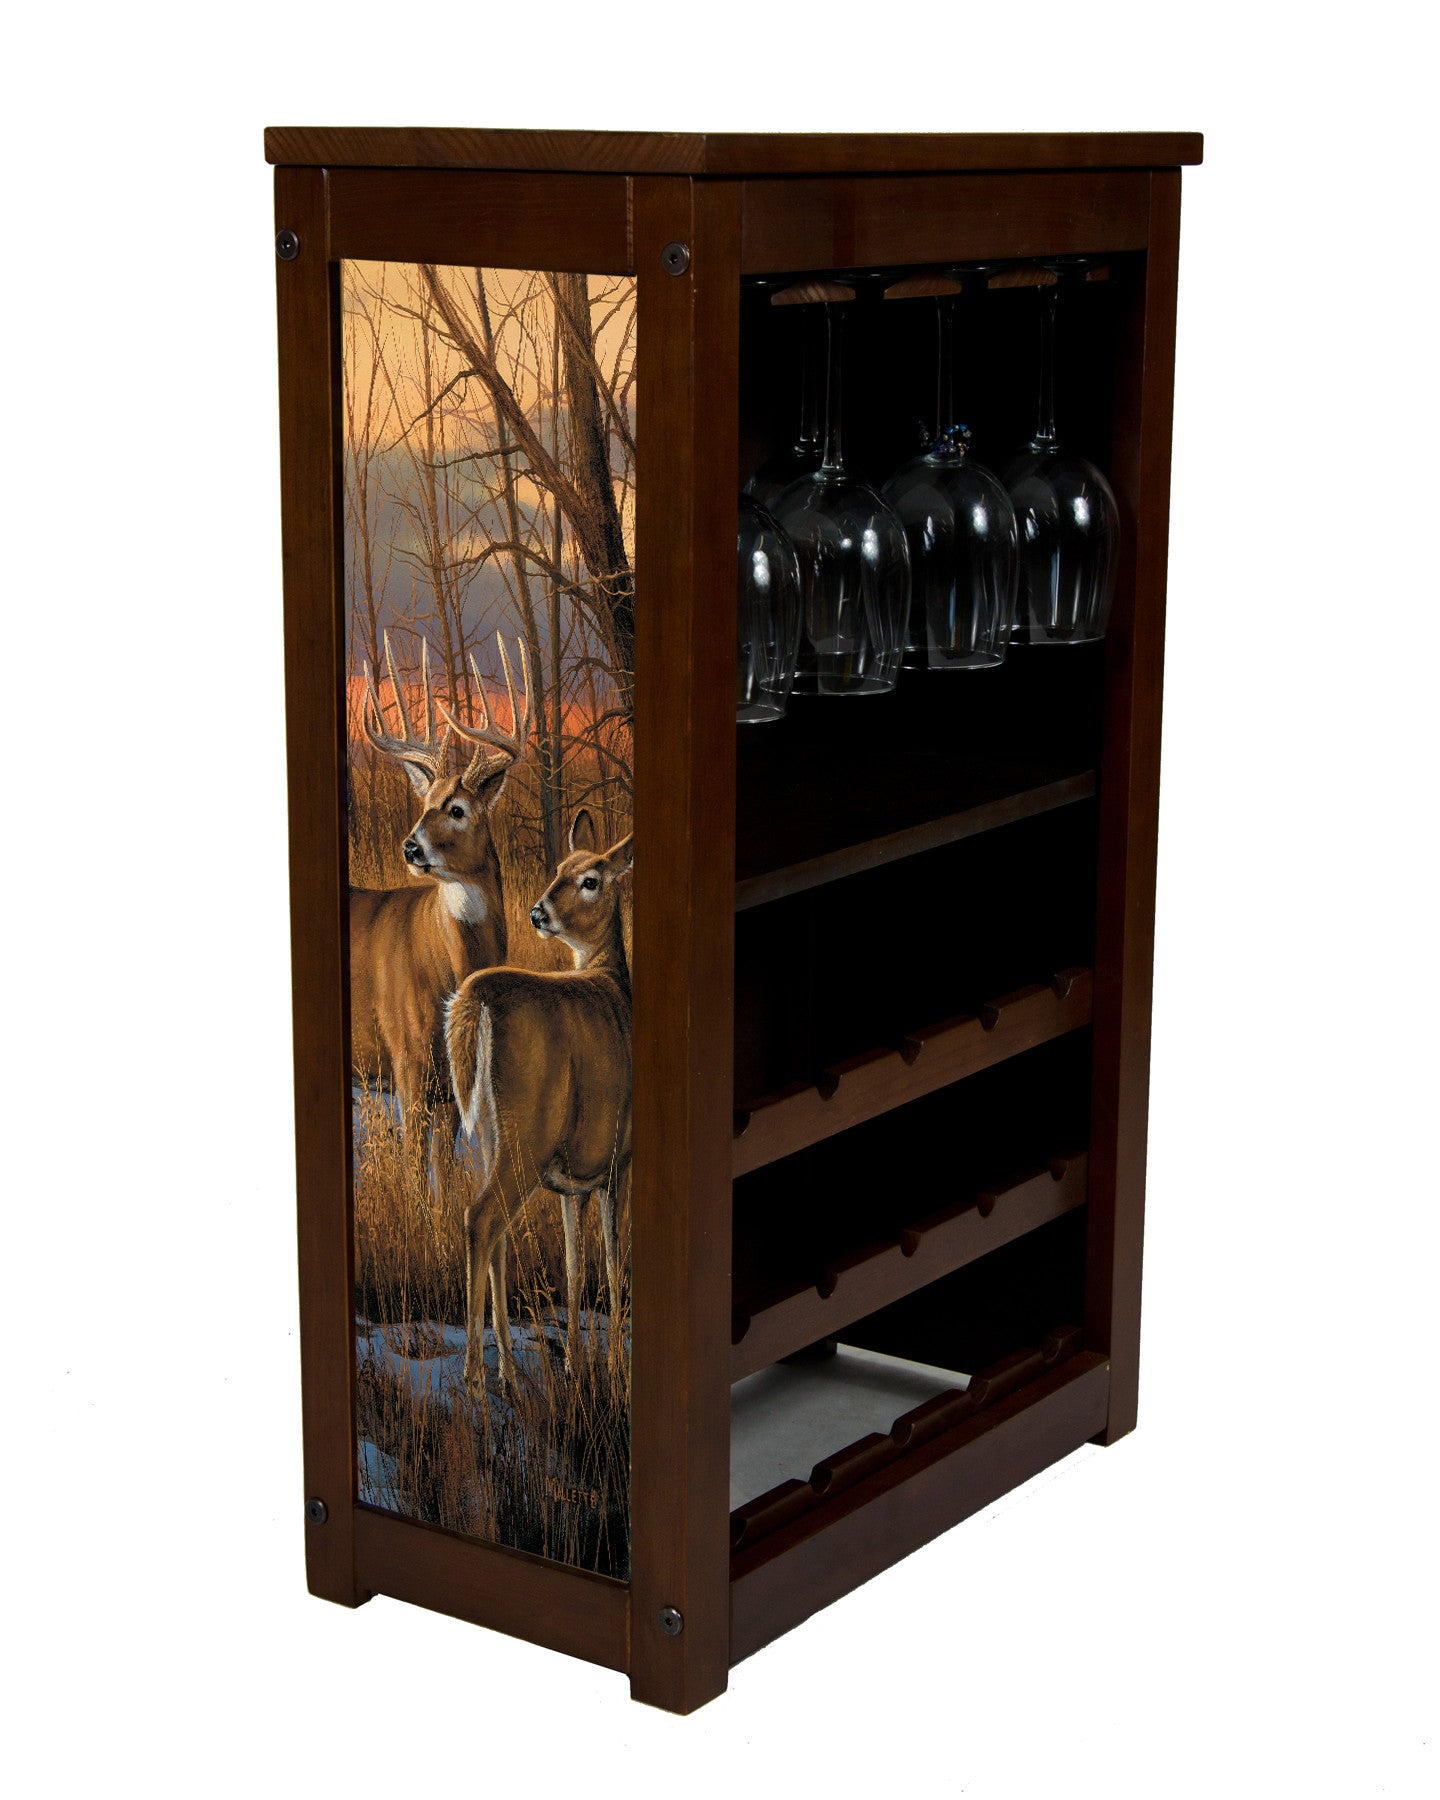 Whitetail deer wine rack with daybreak whitetails by Millette